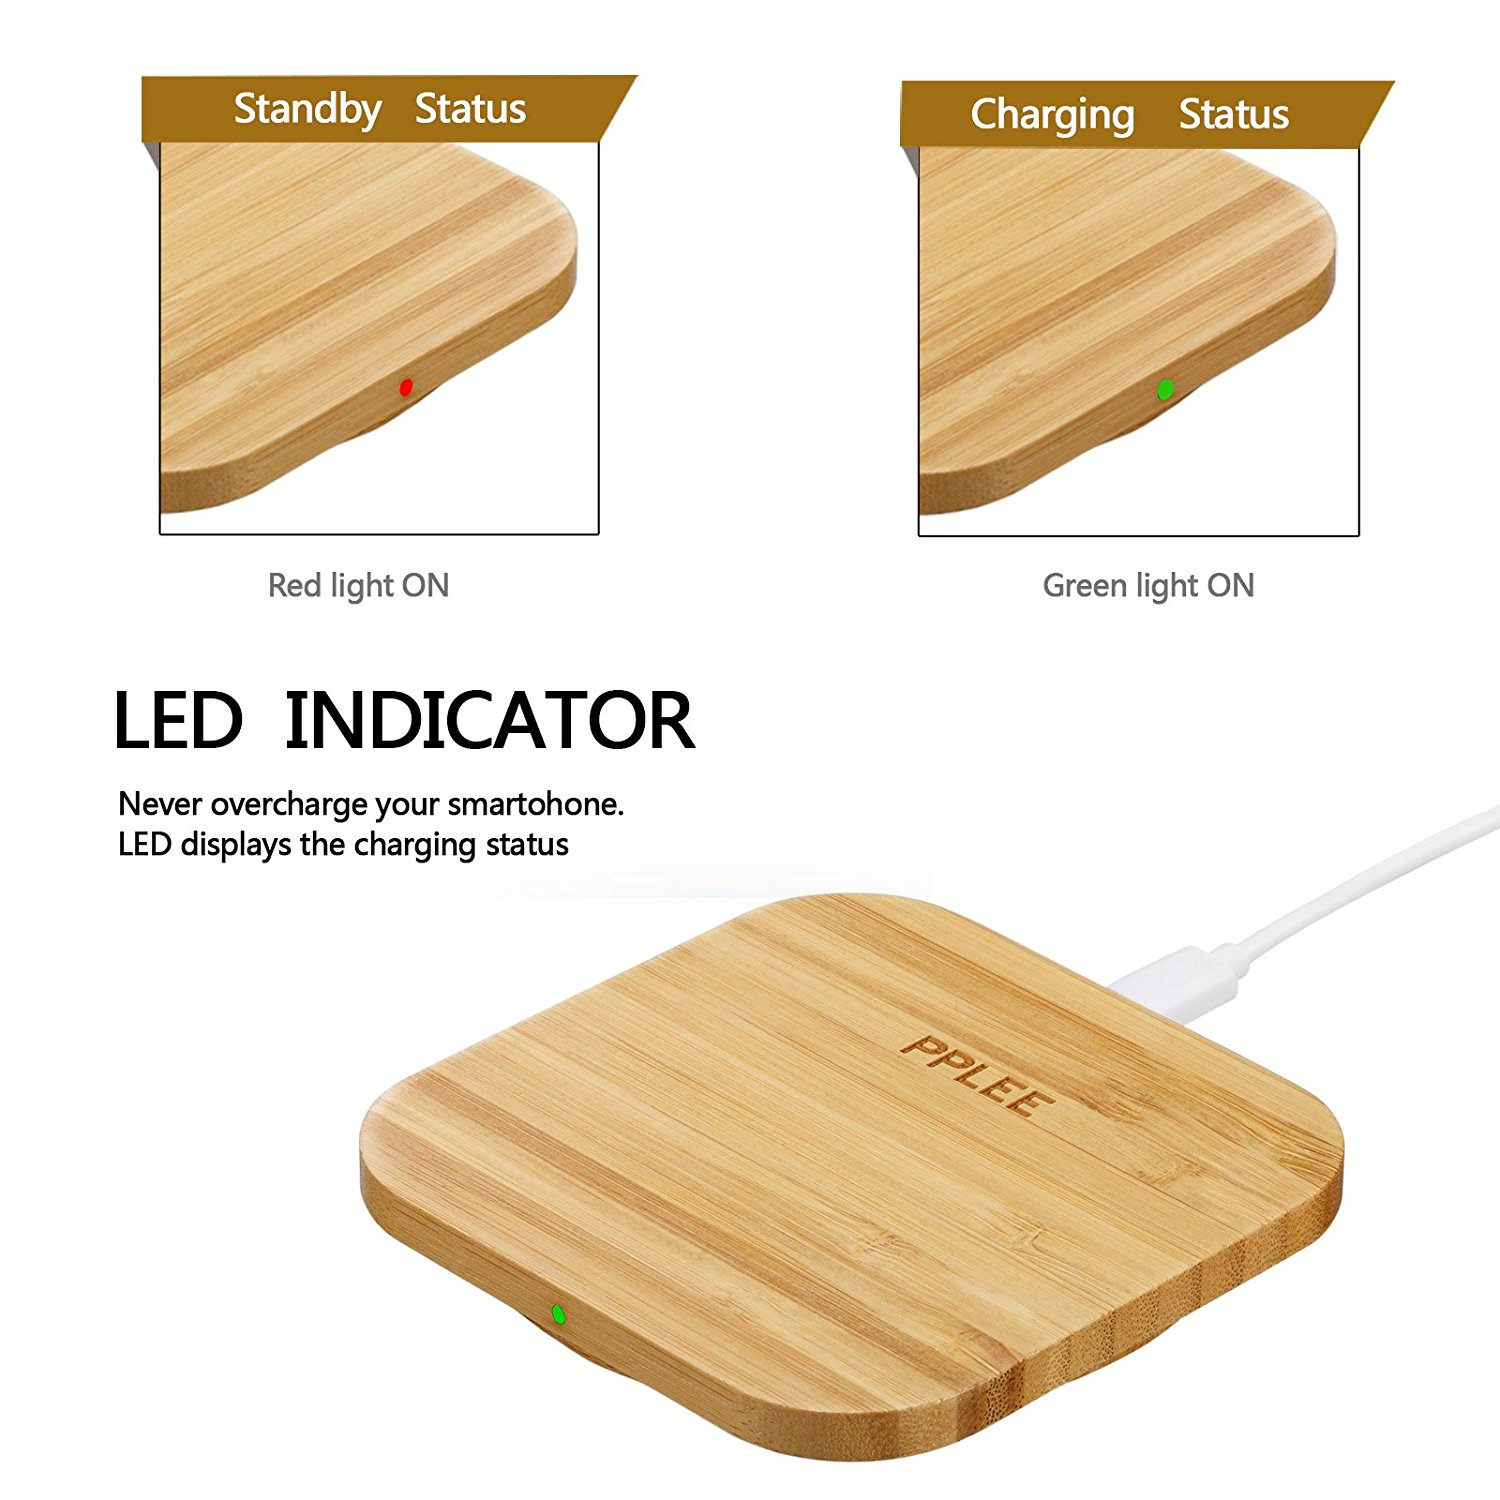 PPLEE Bamboo Wirelss Phone Charging Pad Compatible with Samsung S6,Note 5,S6 Edge +,Nexus 4/5/6/7,Nokia Lumia 920,LG Optimus Vu2,All Qi Stardard Devices (square) image 4